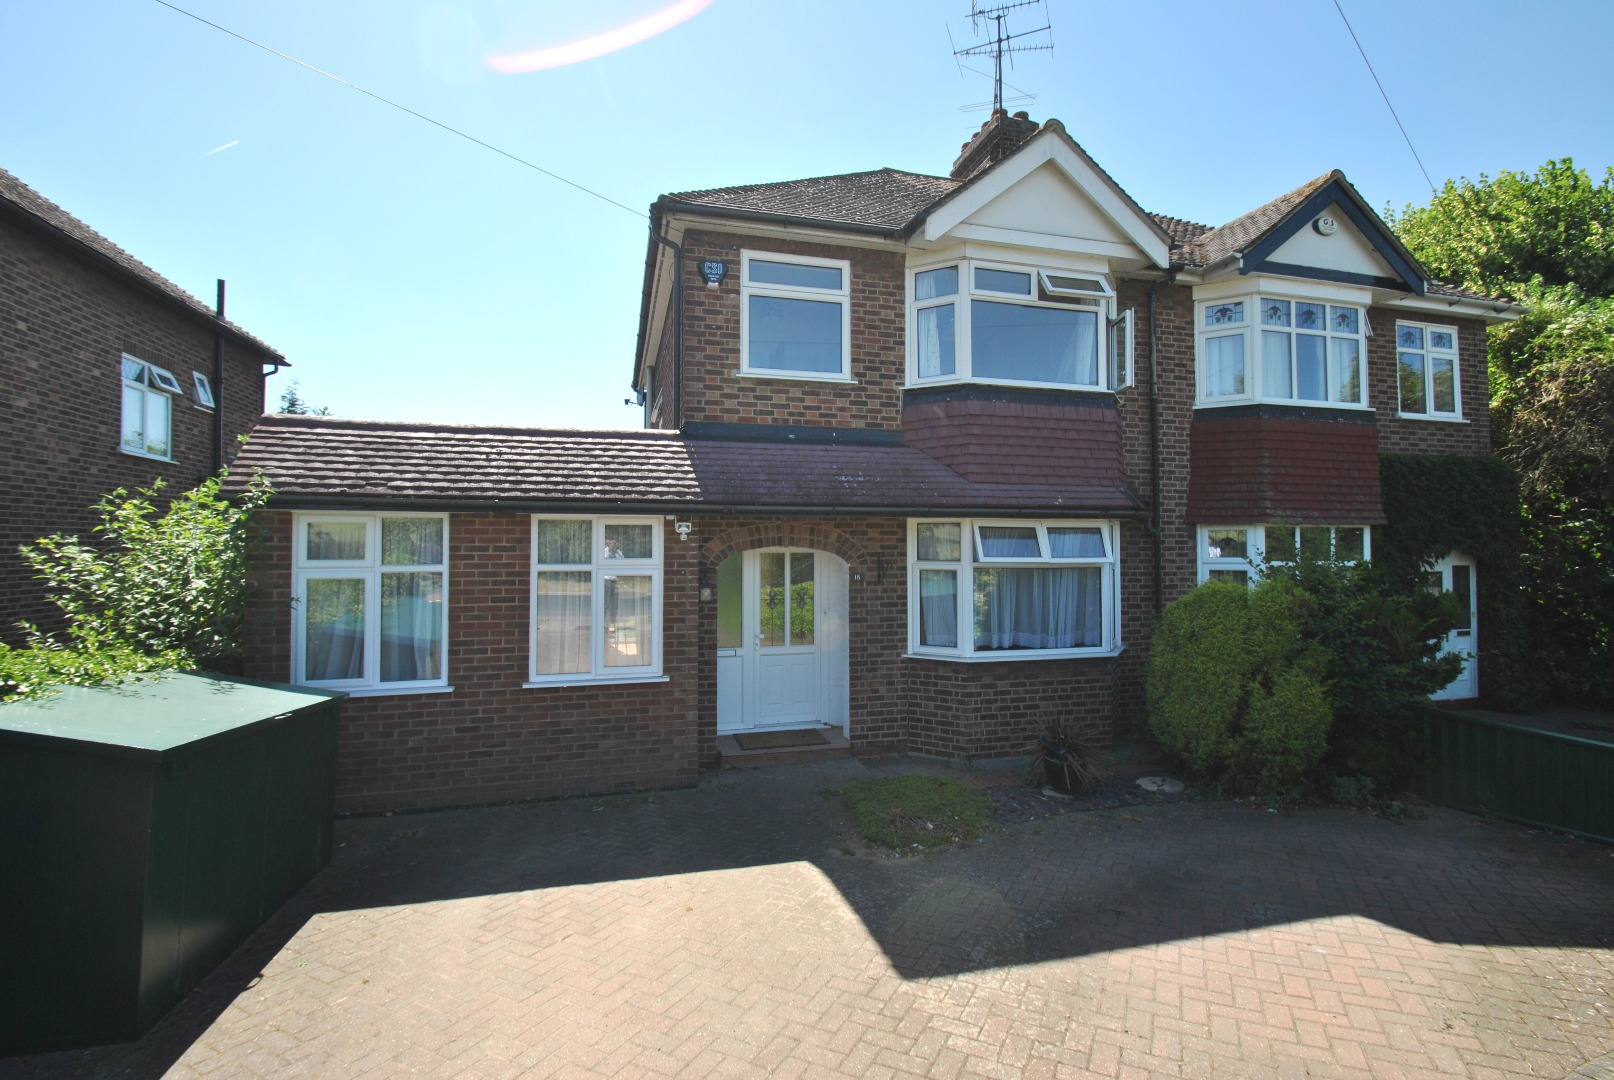 Queenswood Drive, Hitchin, SG4